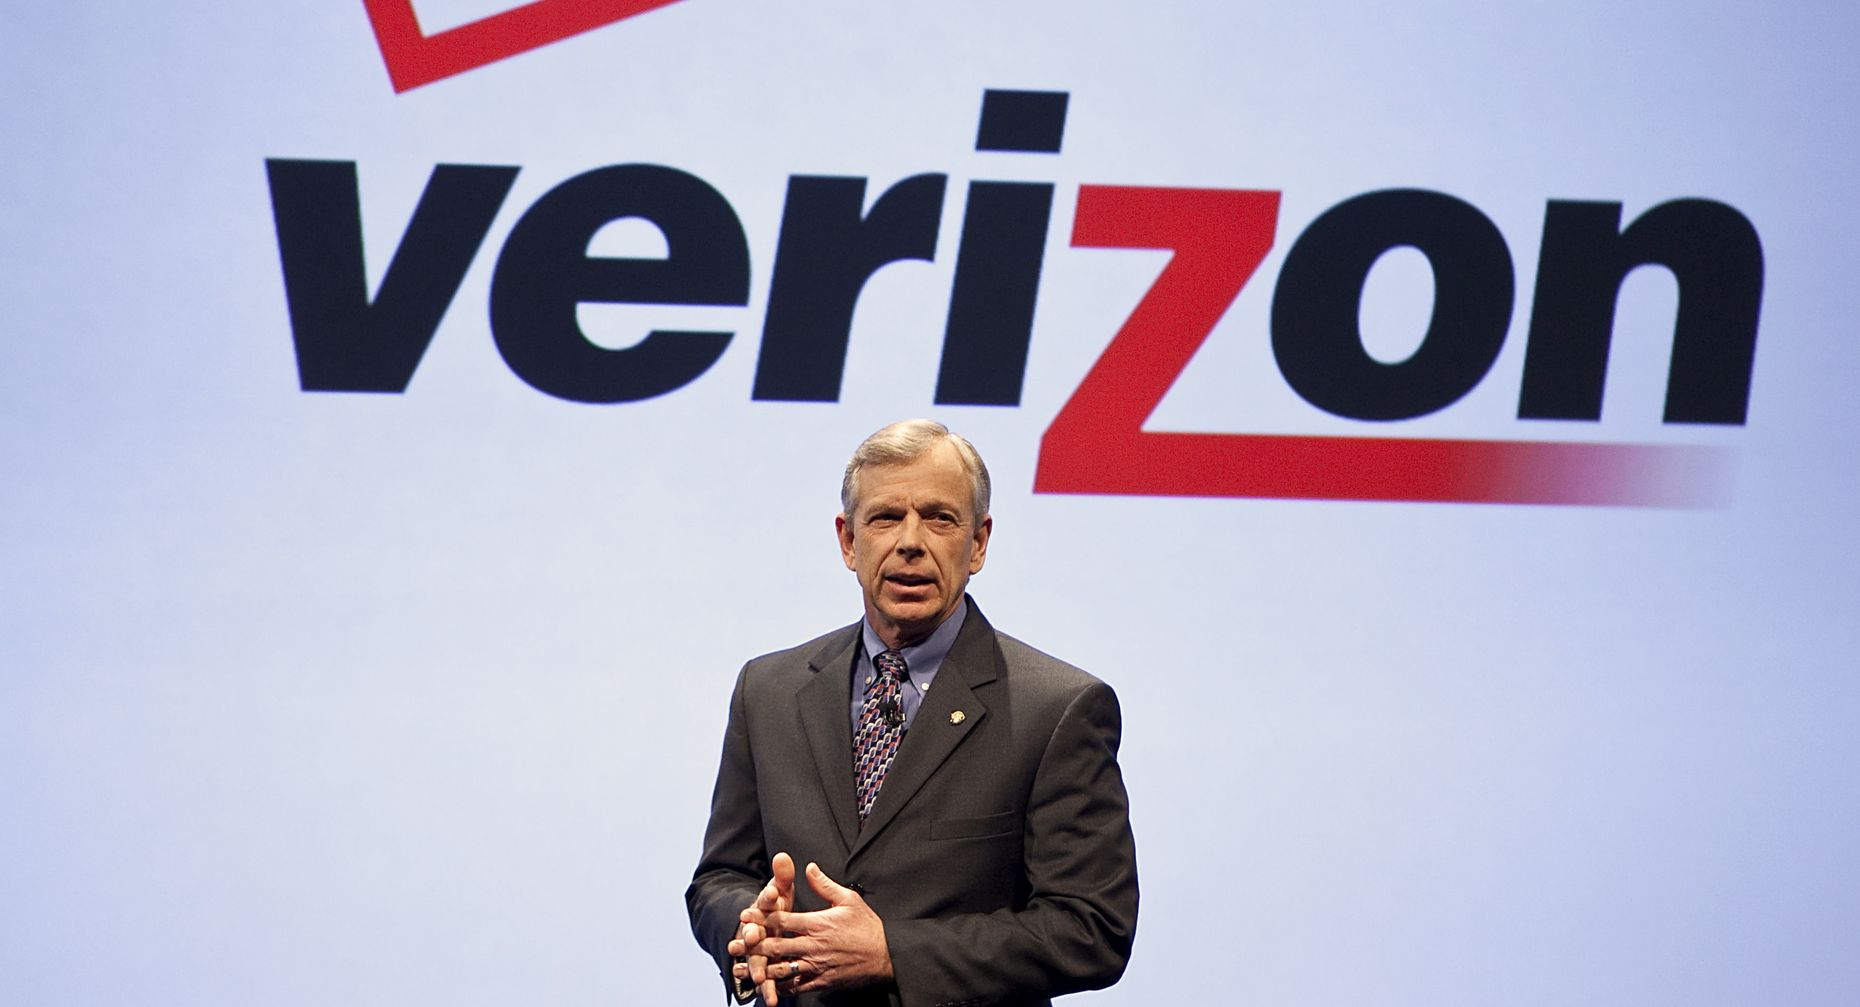 Verizon CEO Lowell McAdam. Photo by Bloomberg.